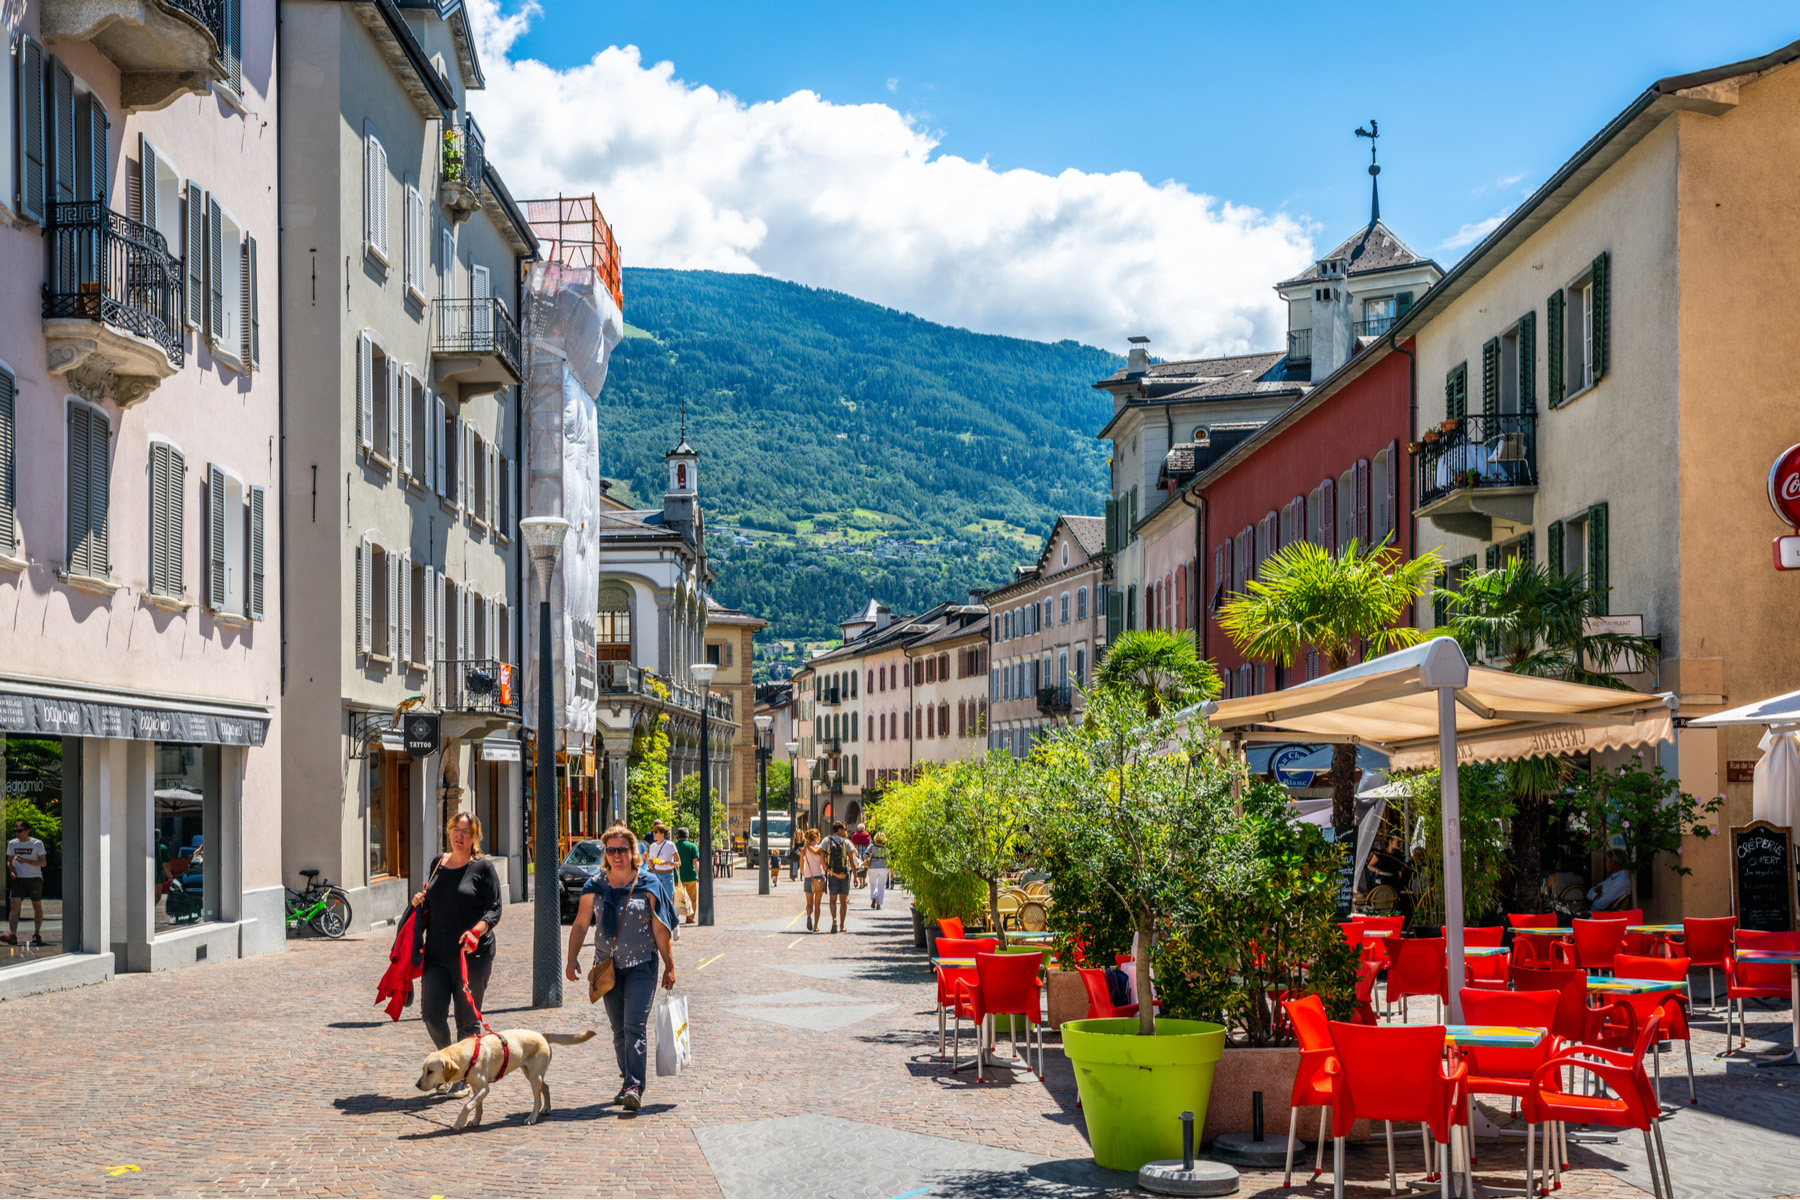 The city center of Sion